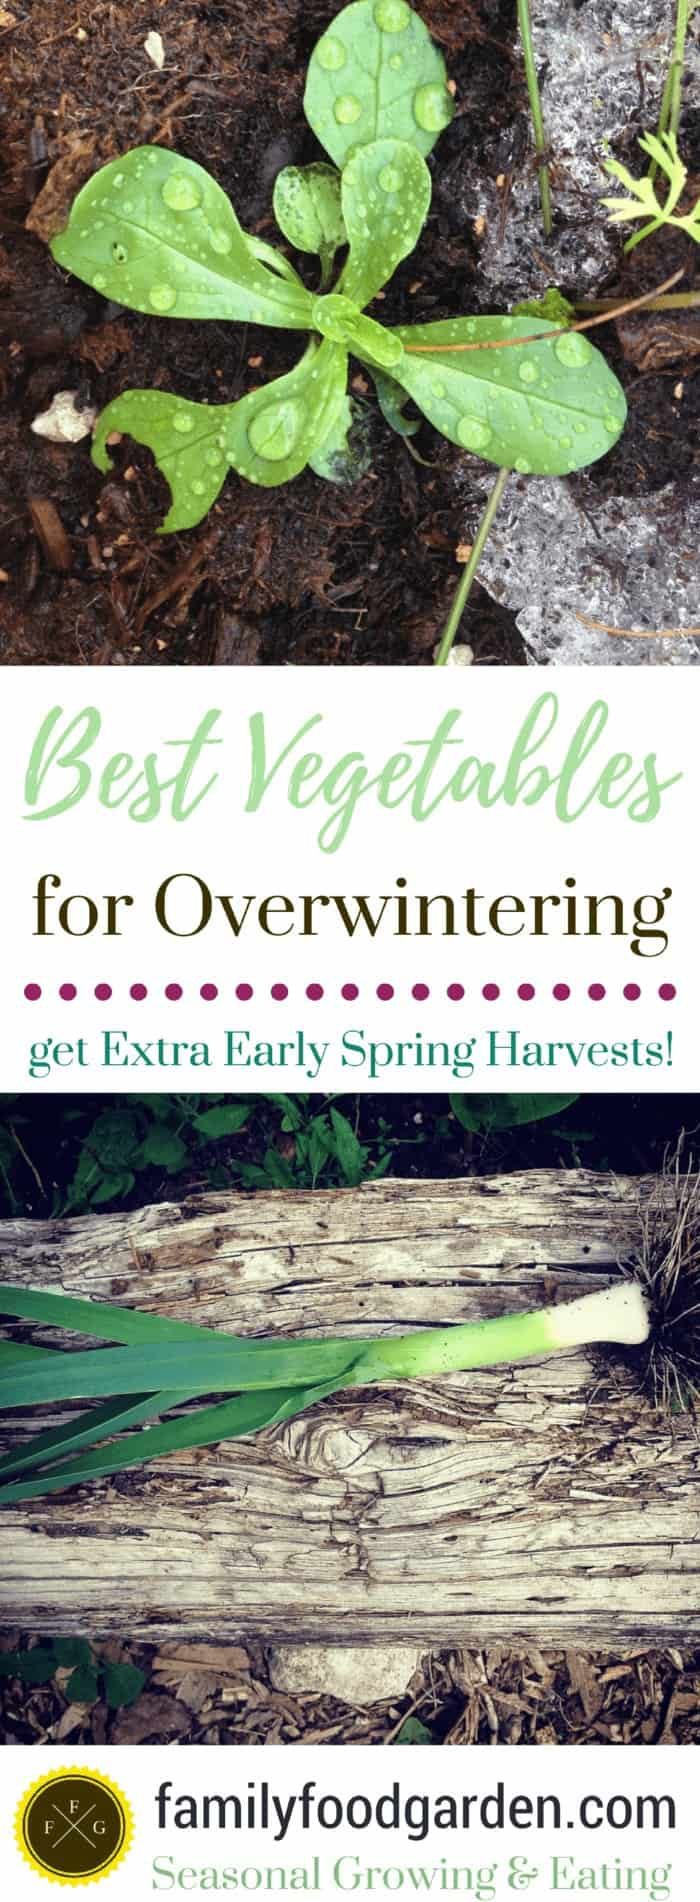 Vegetables for Overwintering